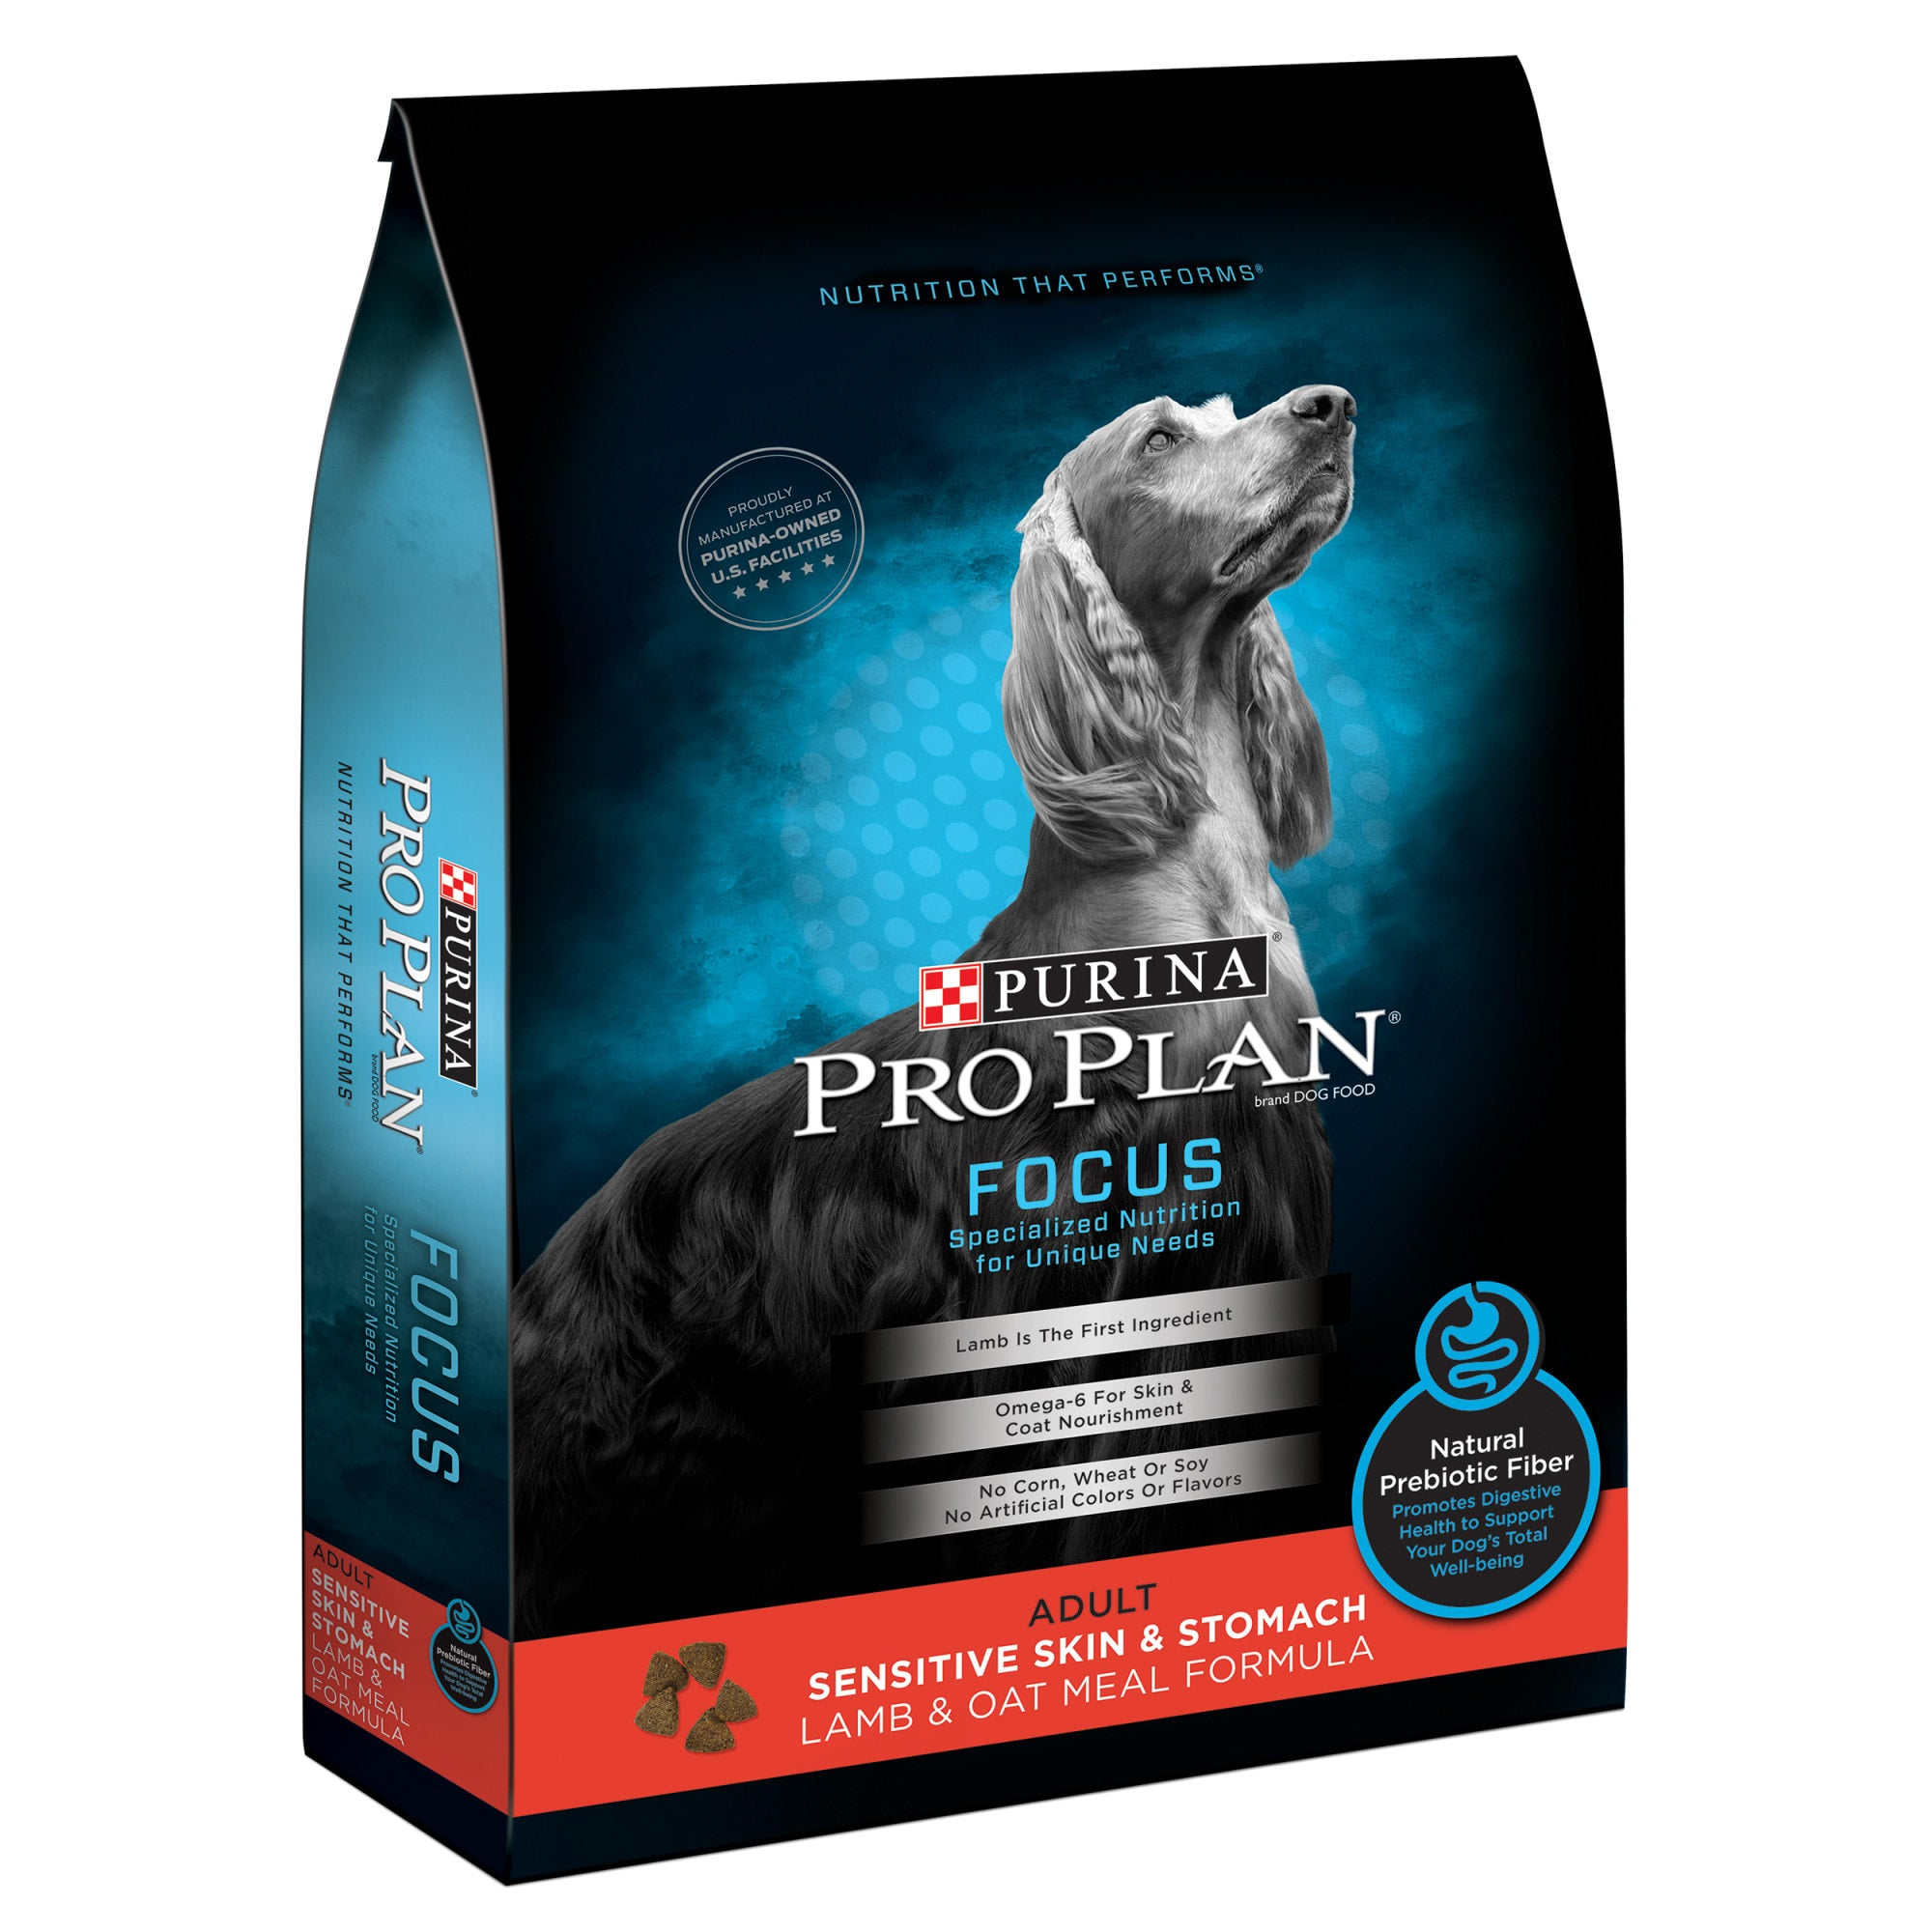 Pro Plan FOCUS Adult Sensitive Skin & Stomach Lamb & Oat Meal Formula Dry Dog Food